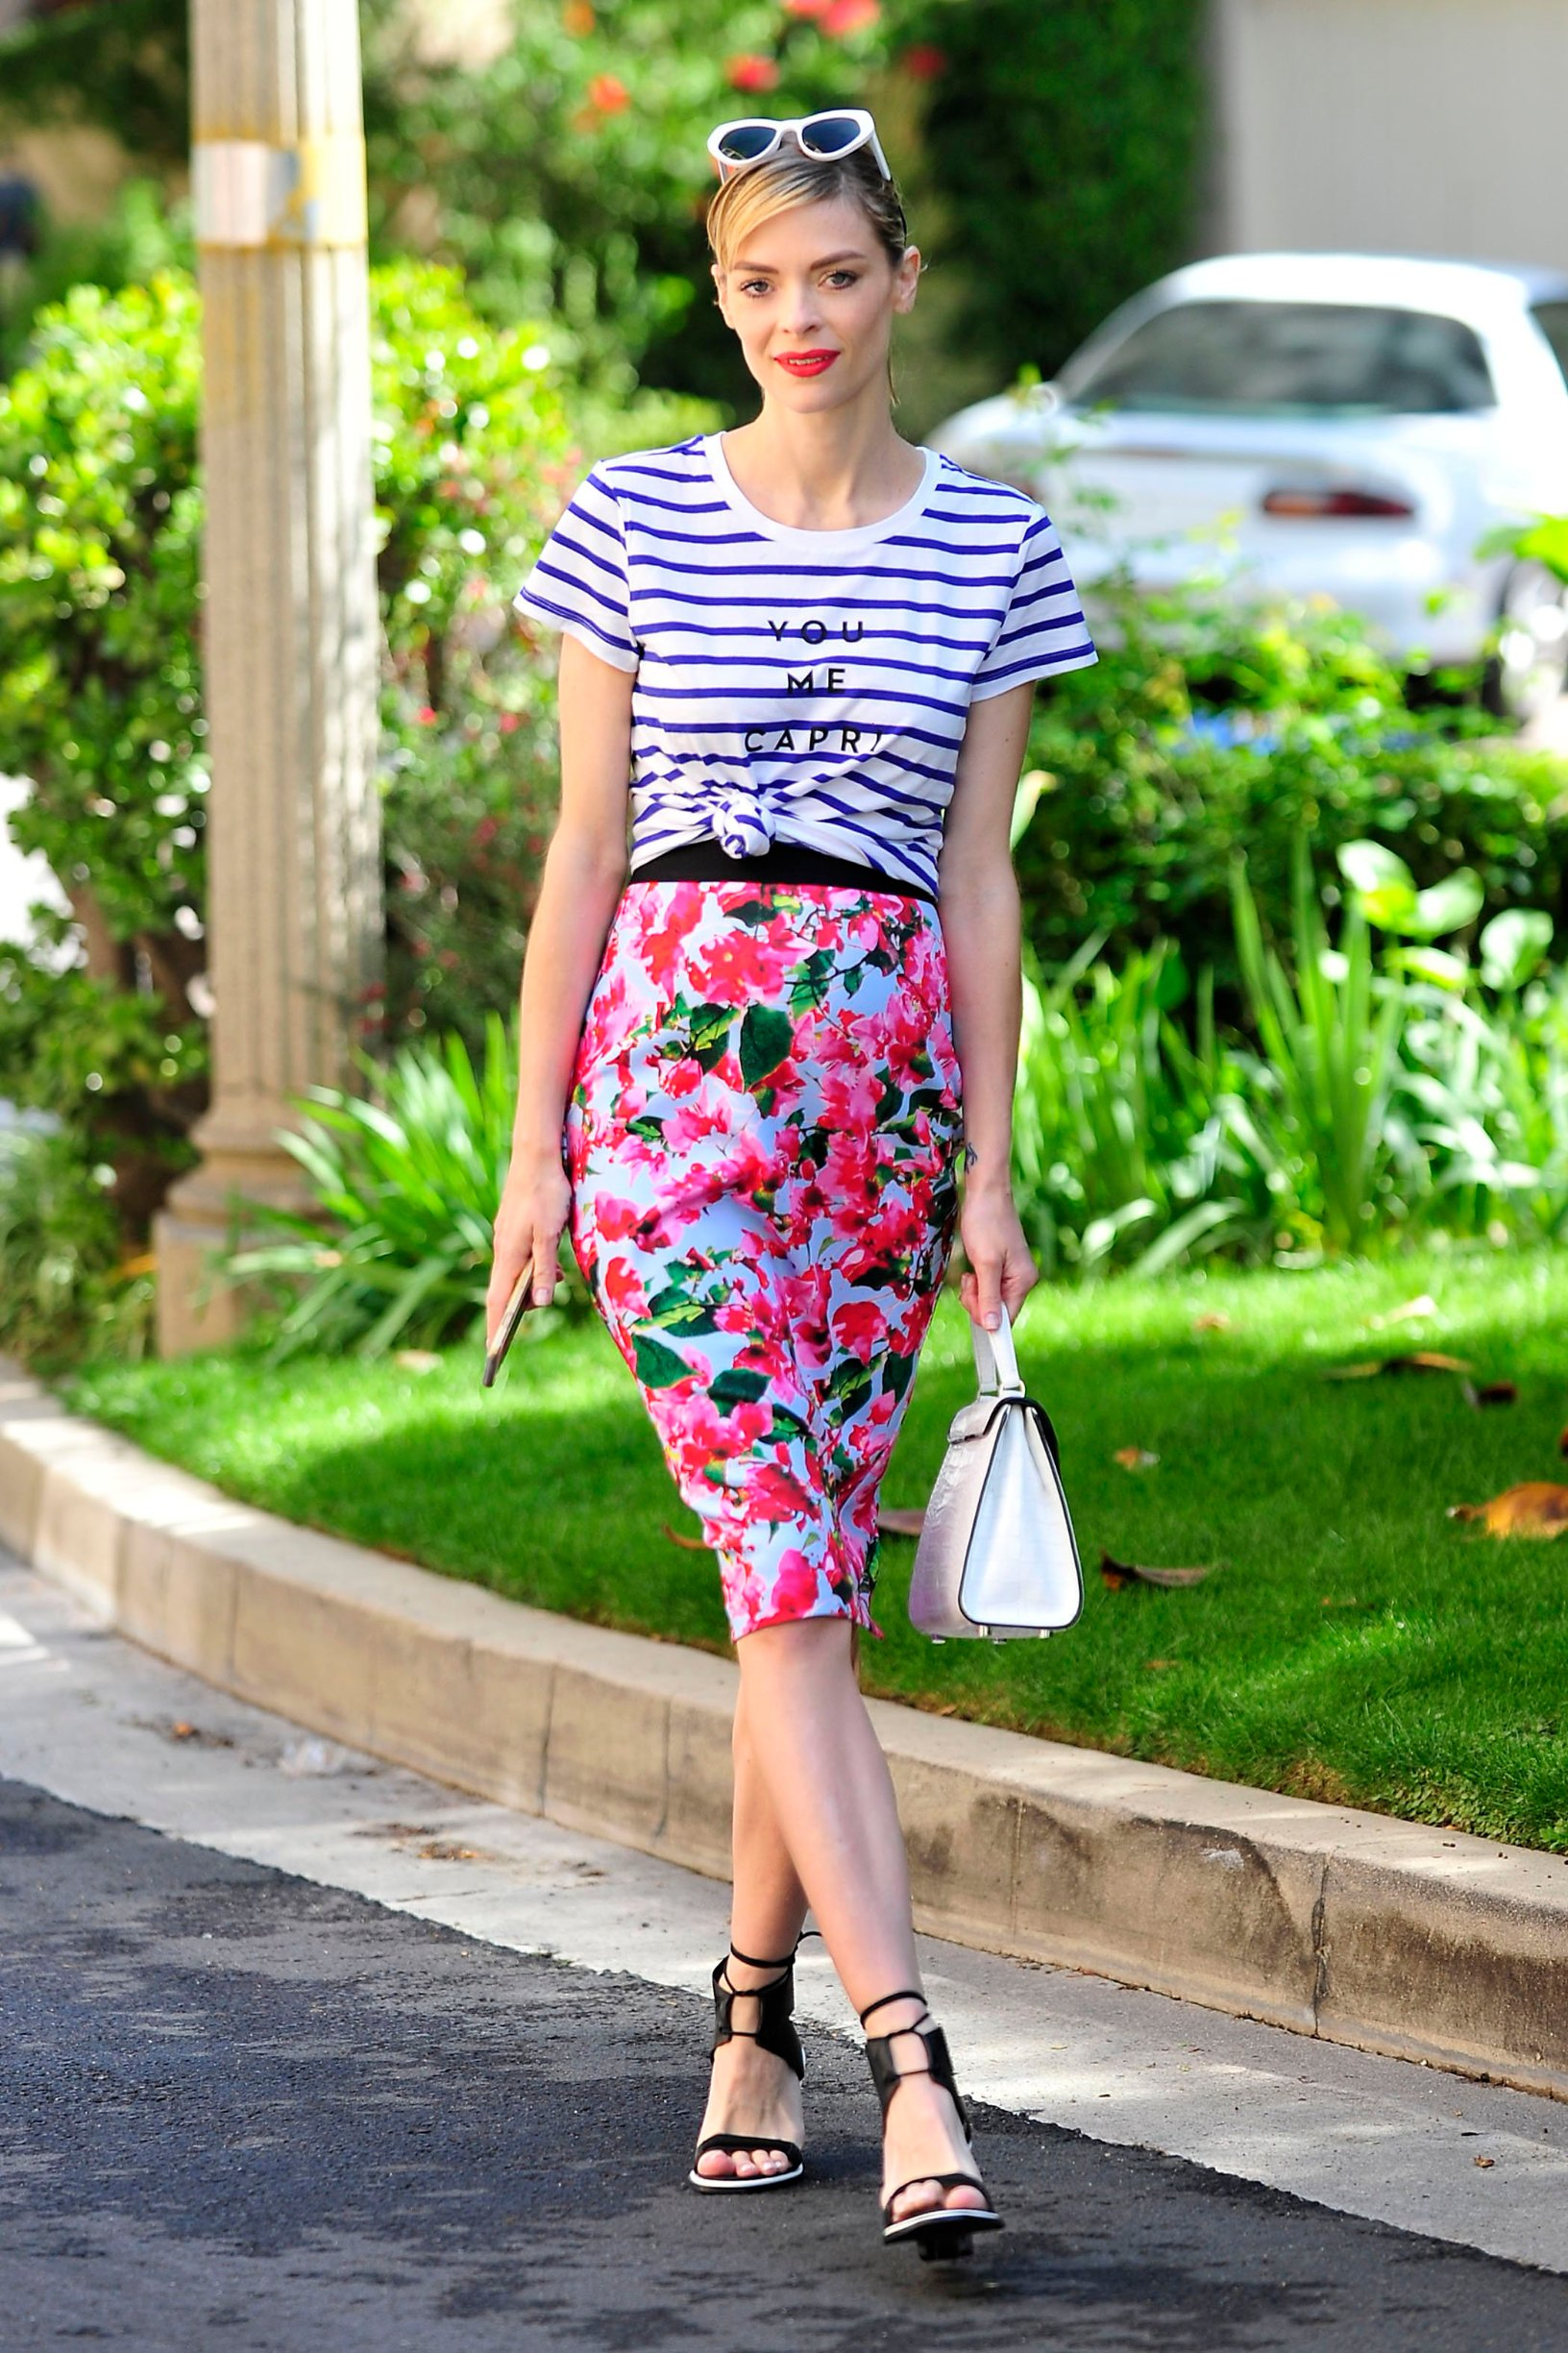 -Los Angeles, CA - 03/23/2105 - Jaime King looks like she is happy Spring is in the air, as she is walking onto the studio lot.  When asked who the skirt and top are, she said Kohl`s MILLY for DesigNation collection, available starting April 23rd. -PICTURED: Jaime King -, Image: 231062186, License: Rights-managed, Restrictions: , Model Release: no, Credit line: Profimedia, INSTAR Images